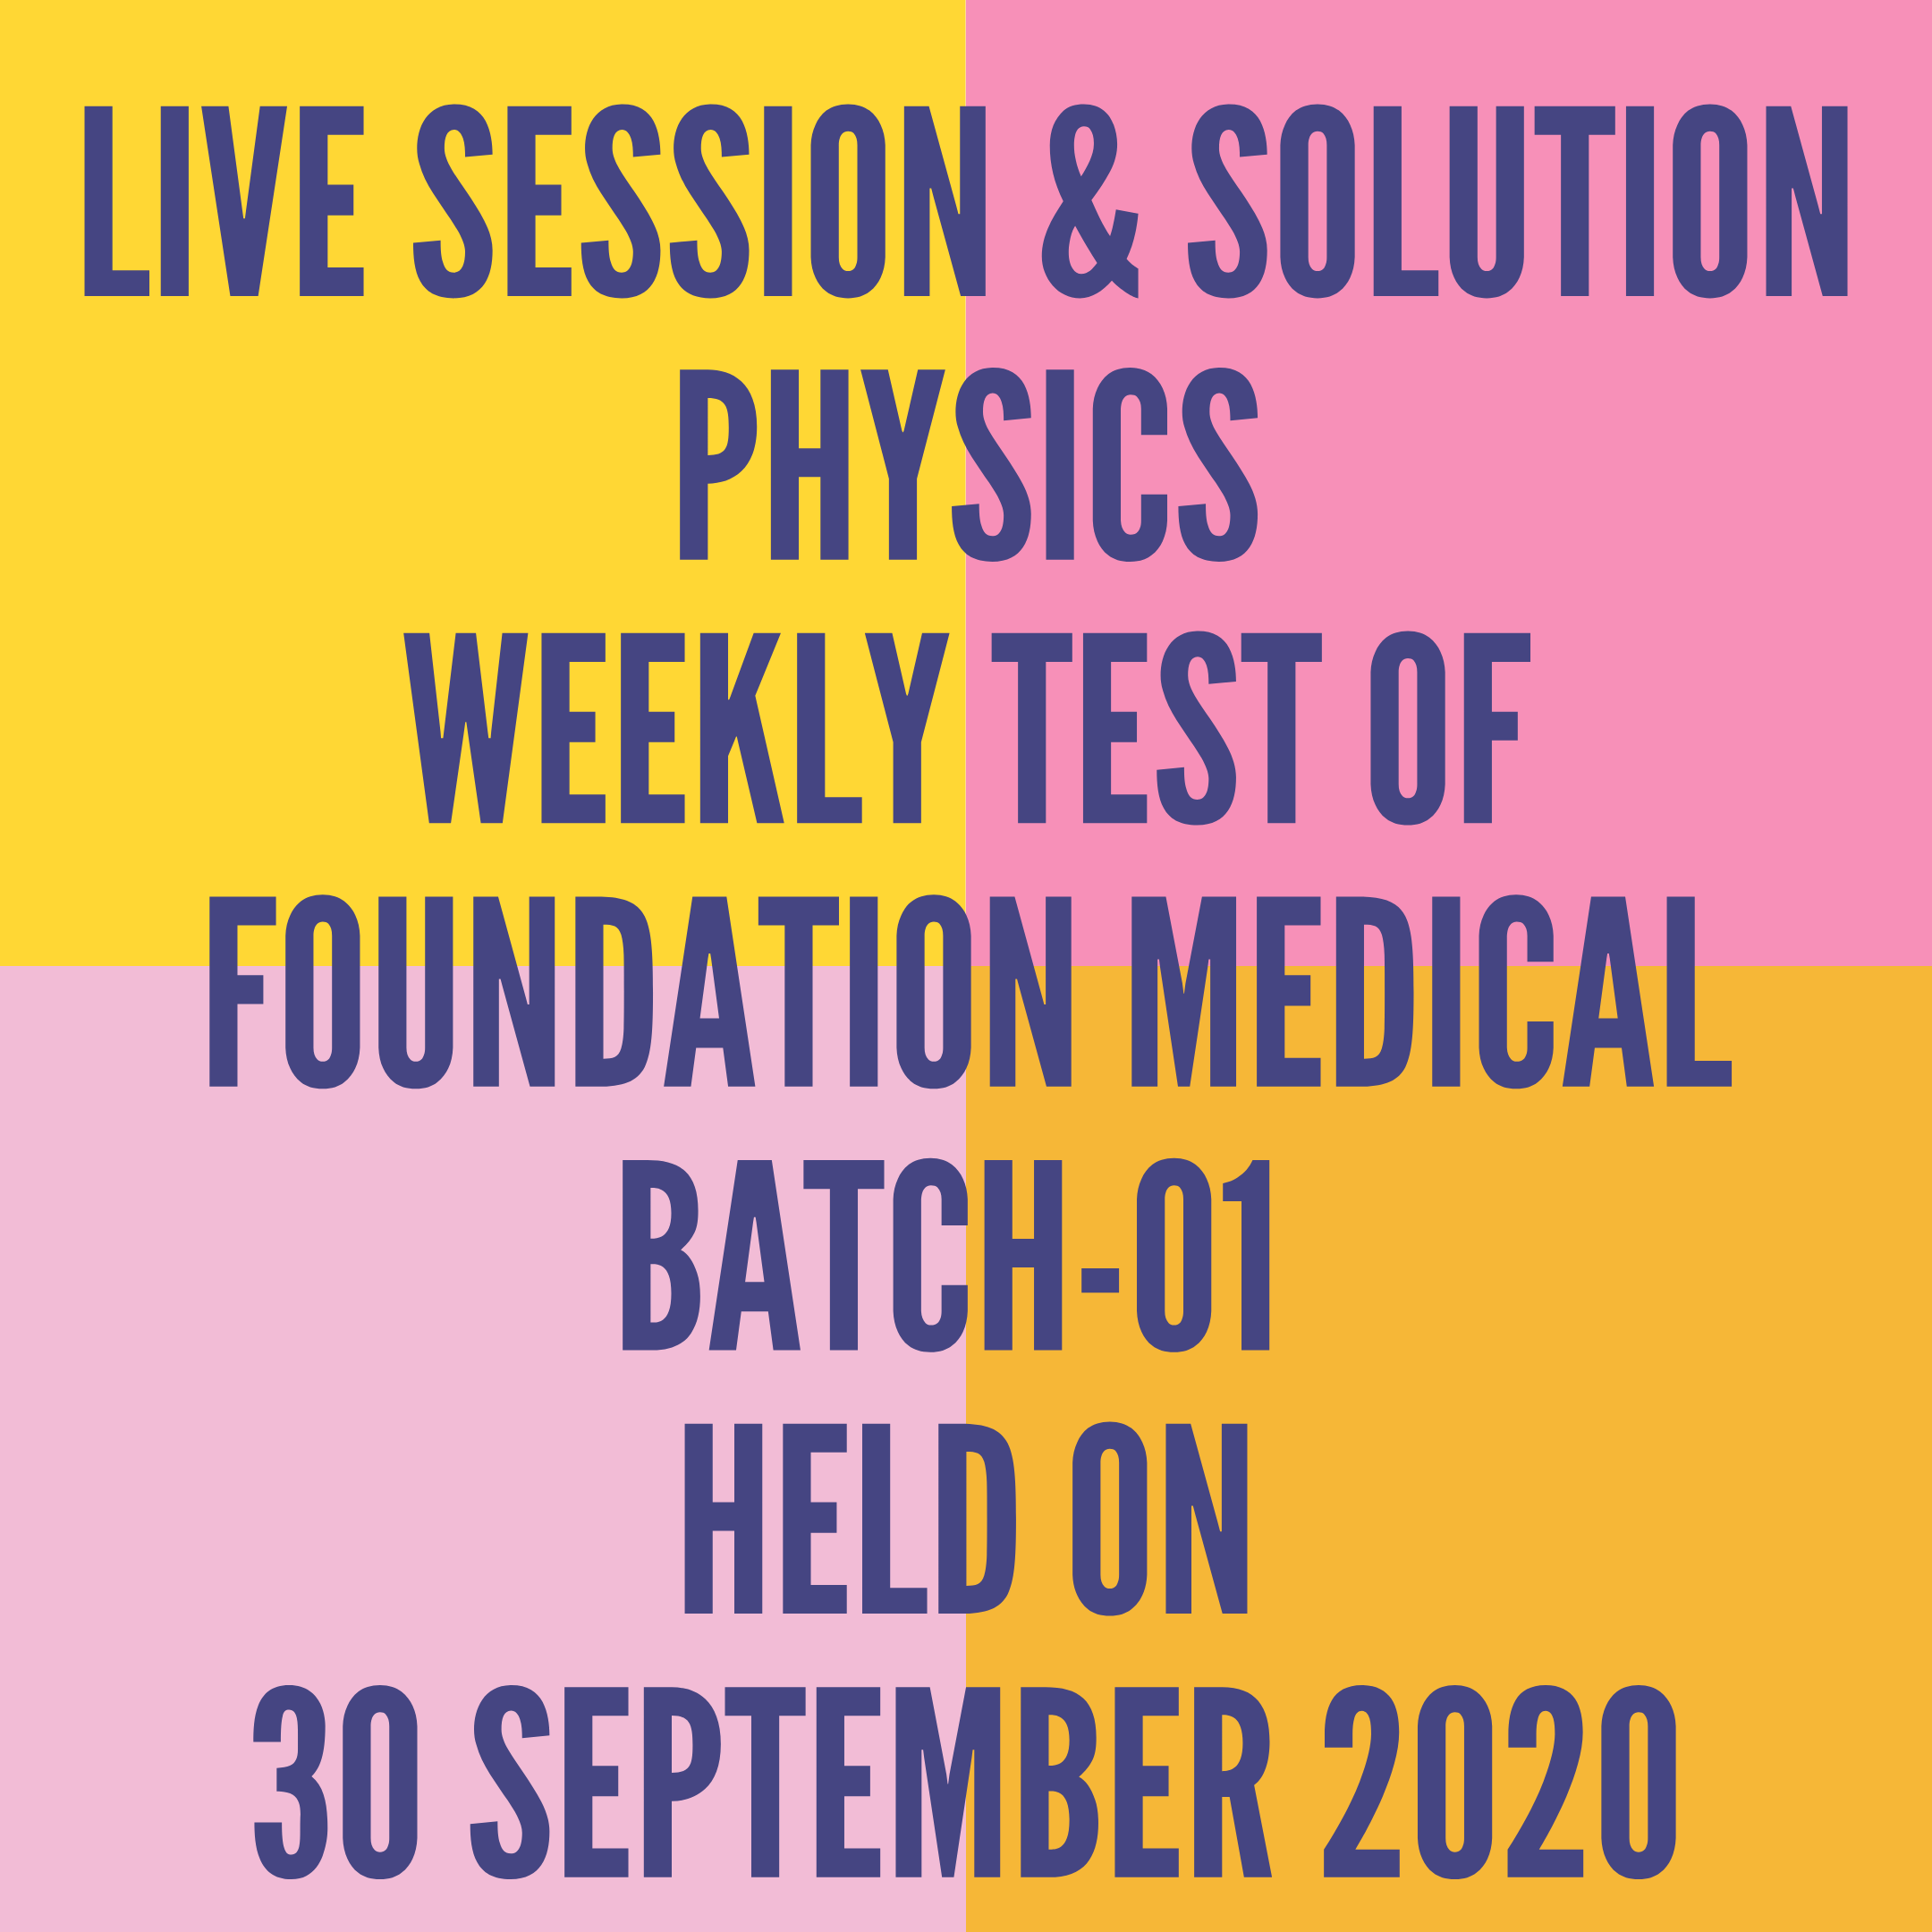 LIVE SESSION & SOLUTION PHYSICS WEEKLY TEST OF FOUNDATION MEDICAL BATCH-01  HELD ON 30 SEPTEMBER 2020